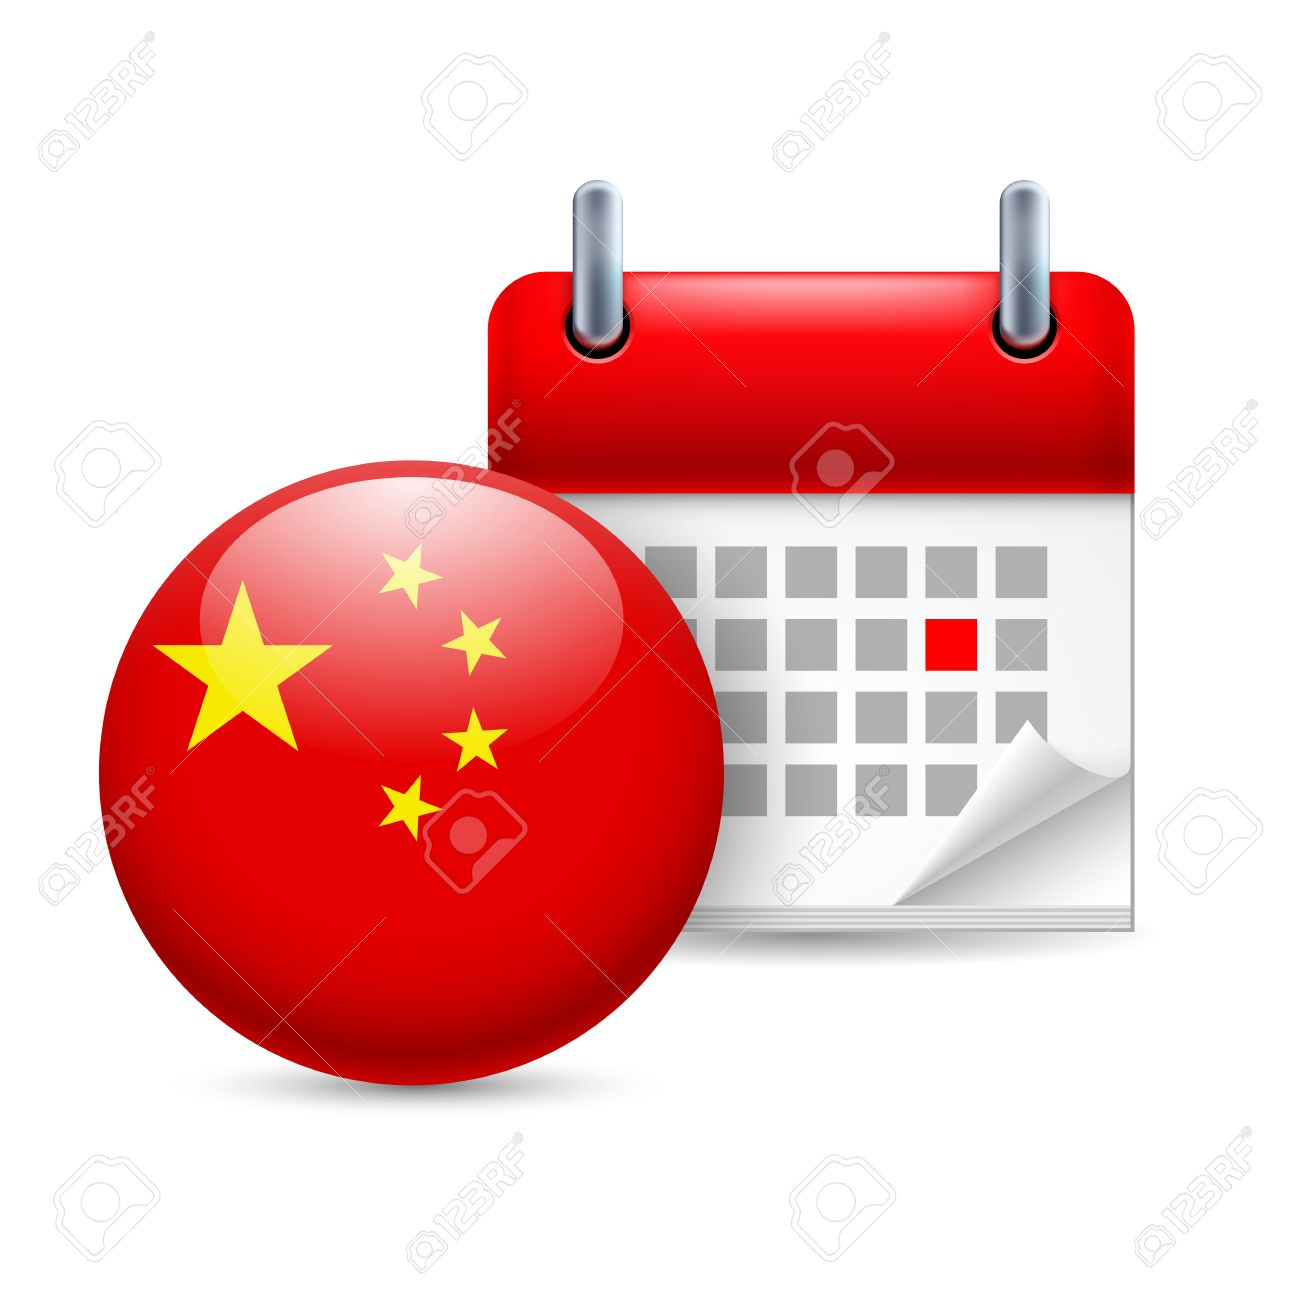 Calendar And Round Chinese Flag Icon National Holiday In China Royalty Free Cliparts Vectors And Stock Illustration Image 30221993